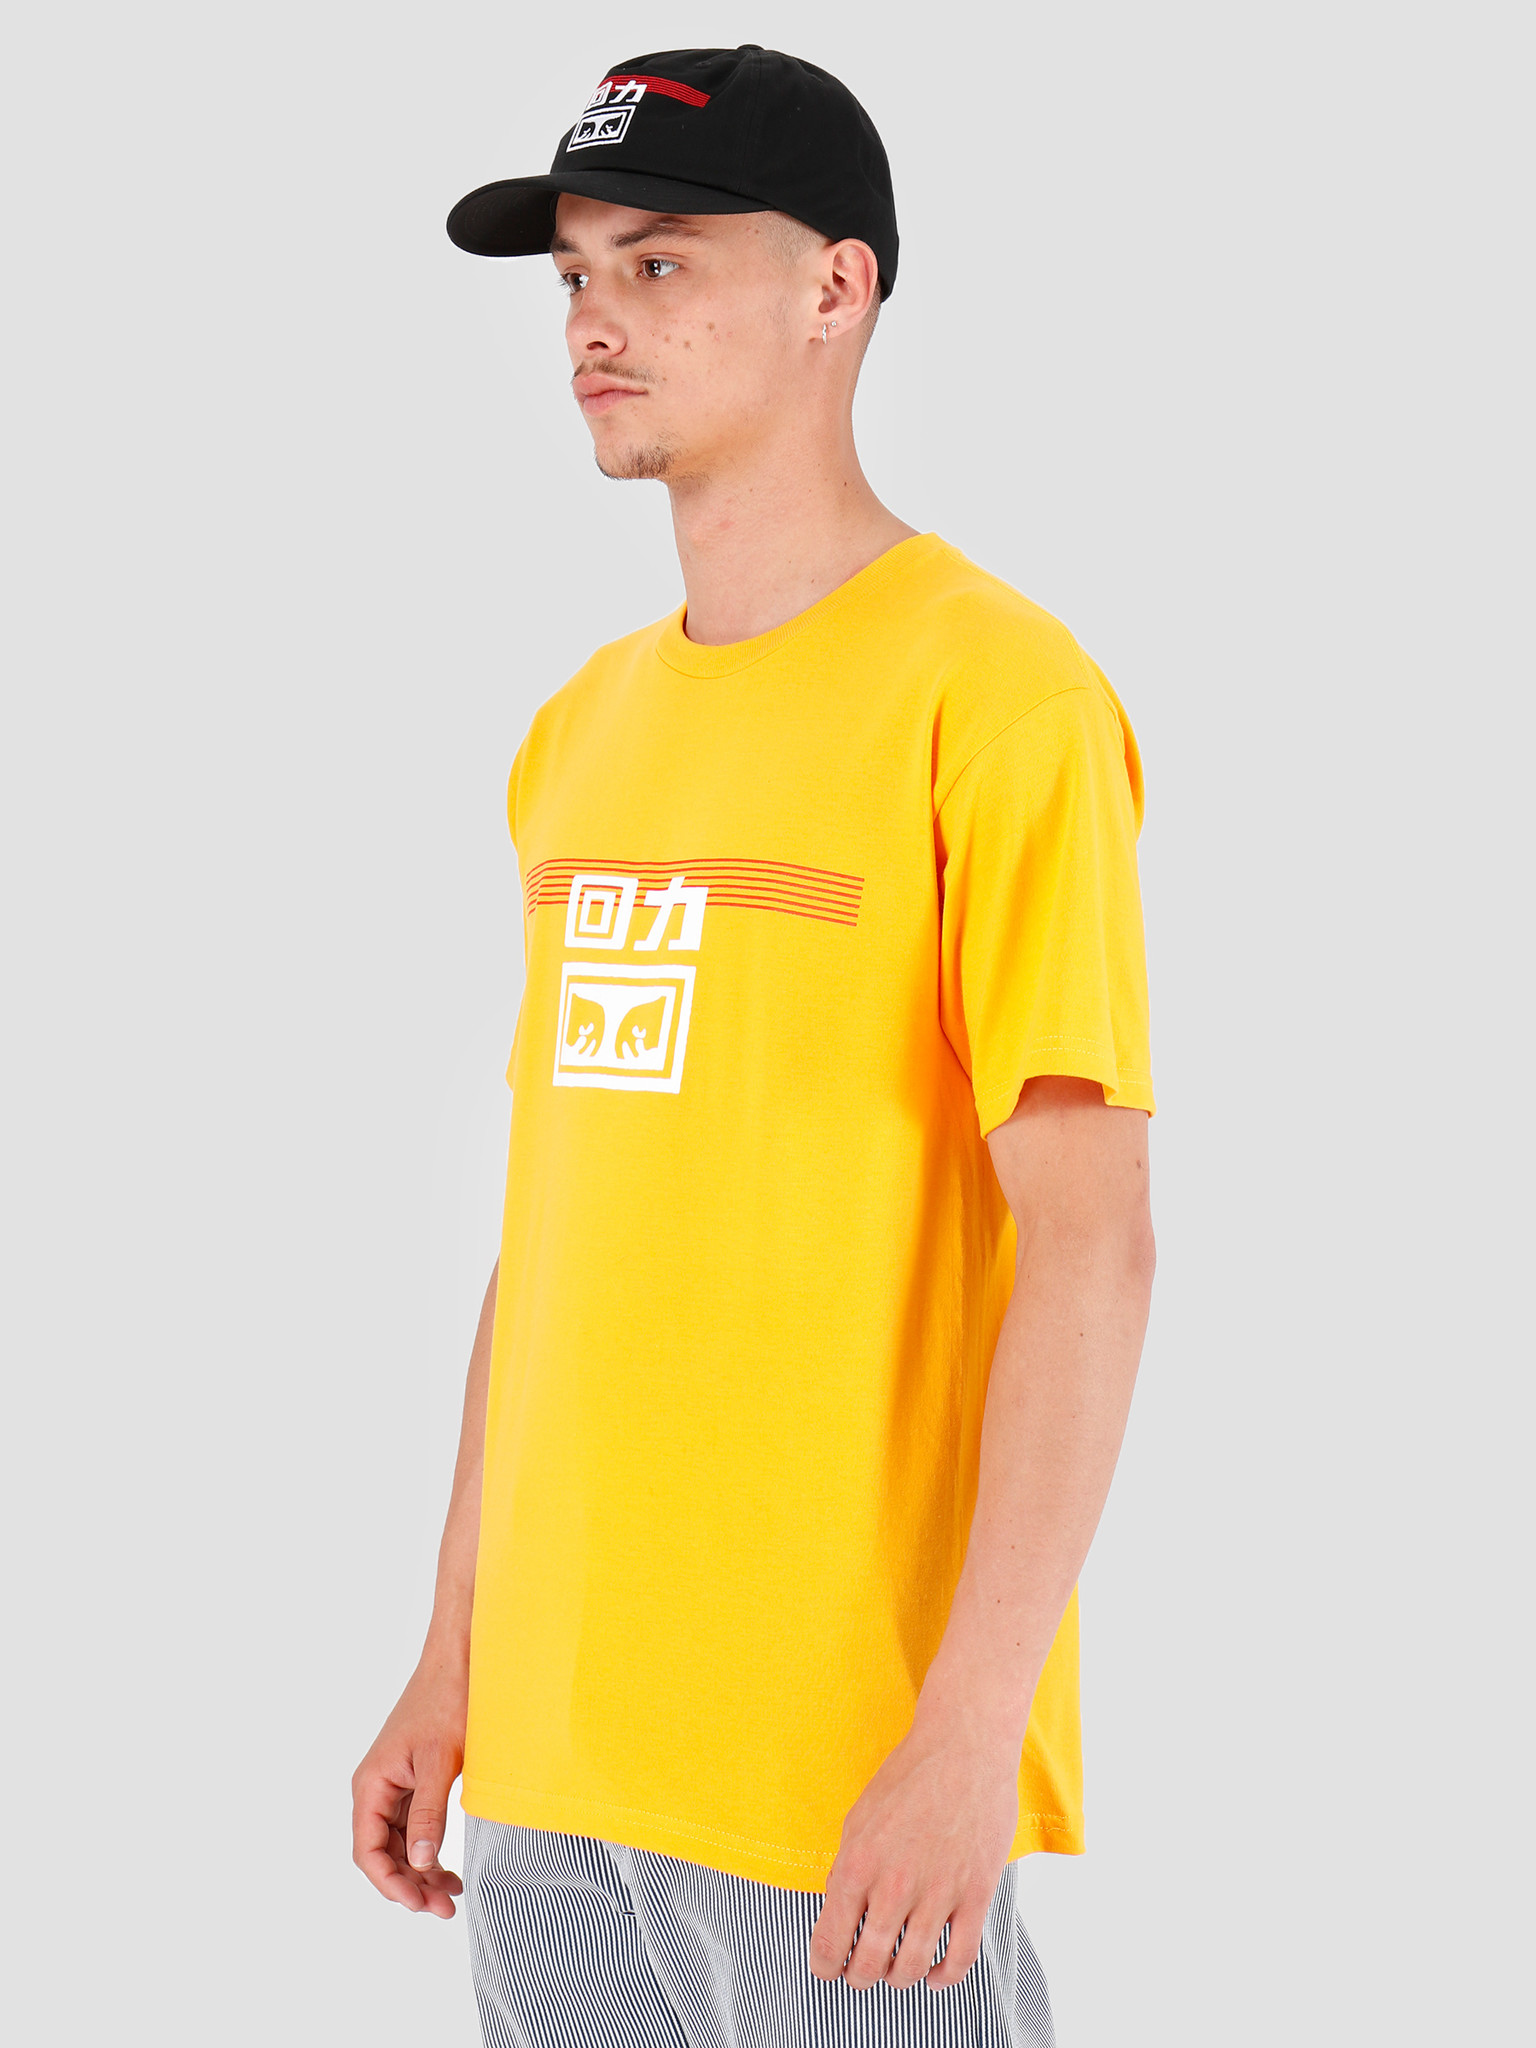 Obey Obey x Warrior T-Shirt Gold 163082172E-GLD